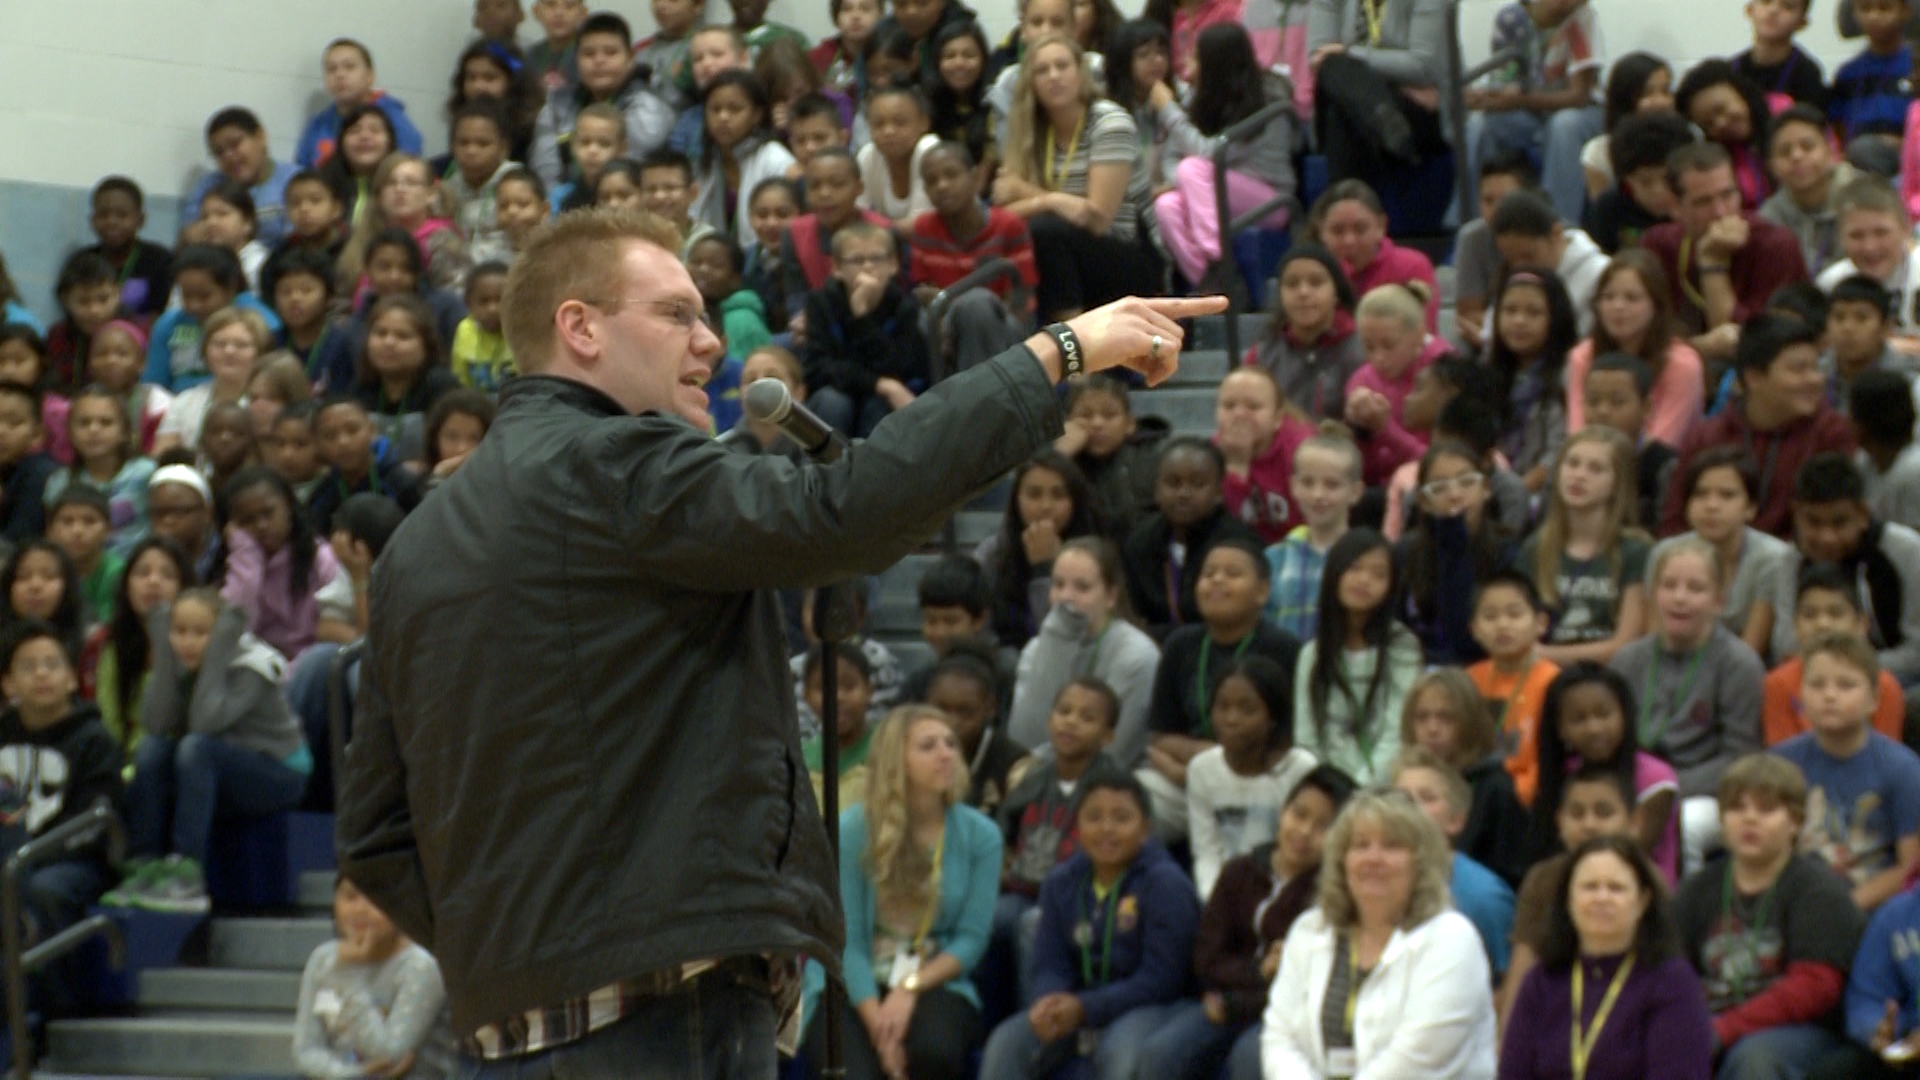 Jeff Veley middle school assembly